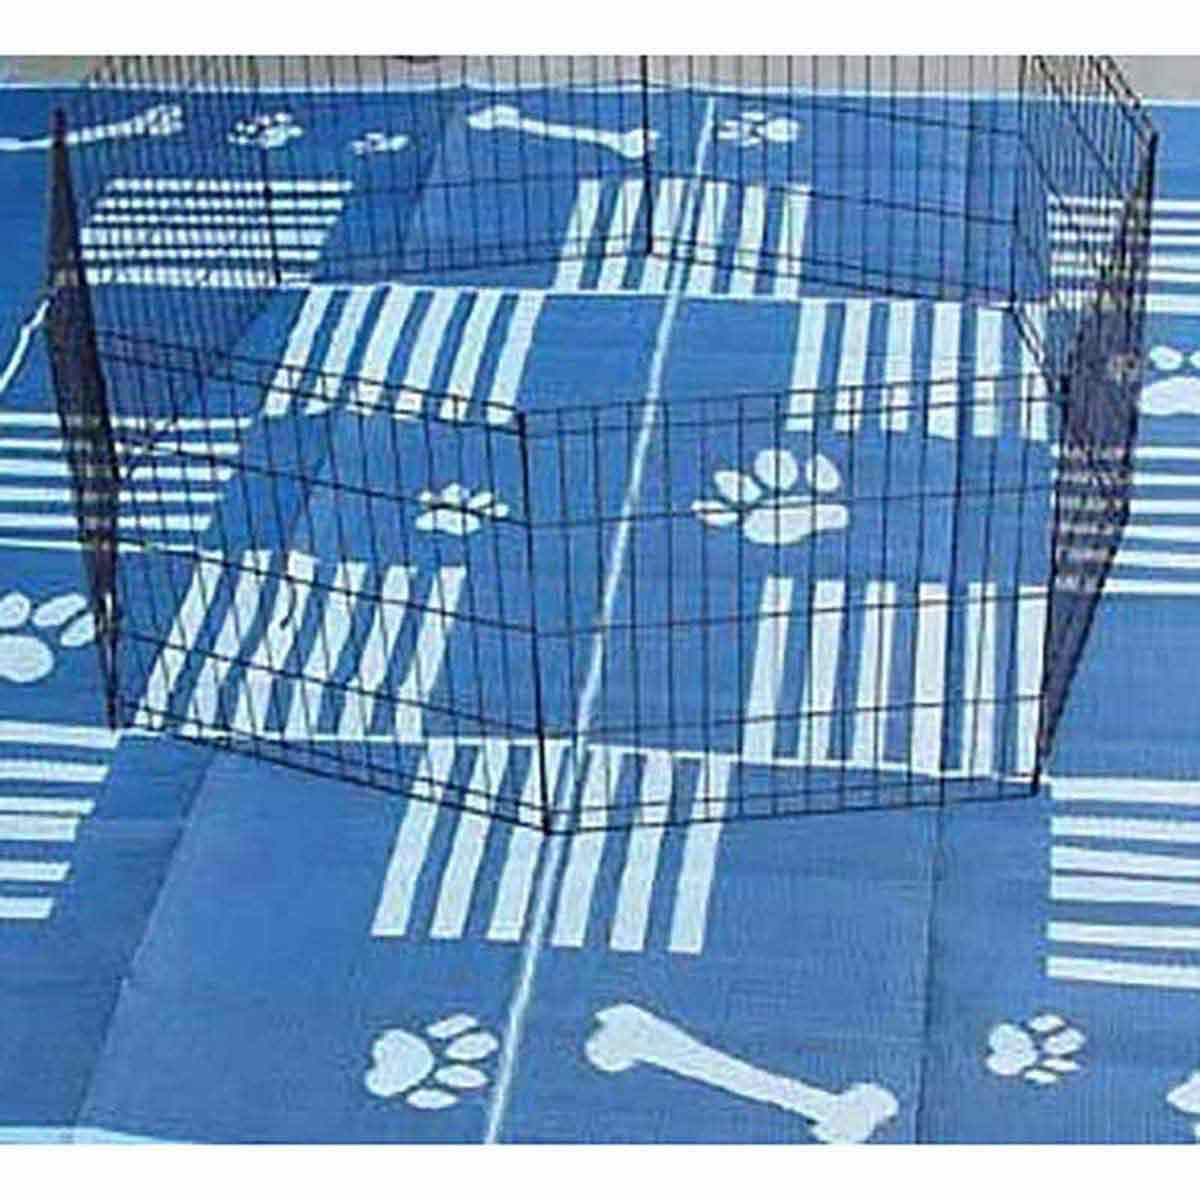 9 foot by 9 foot Plastic Kennel Mat Woven Dog Paw & Bone Design Blue